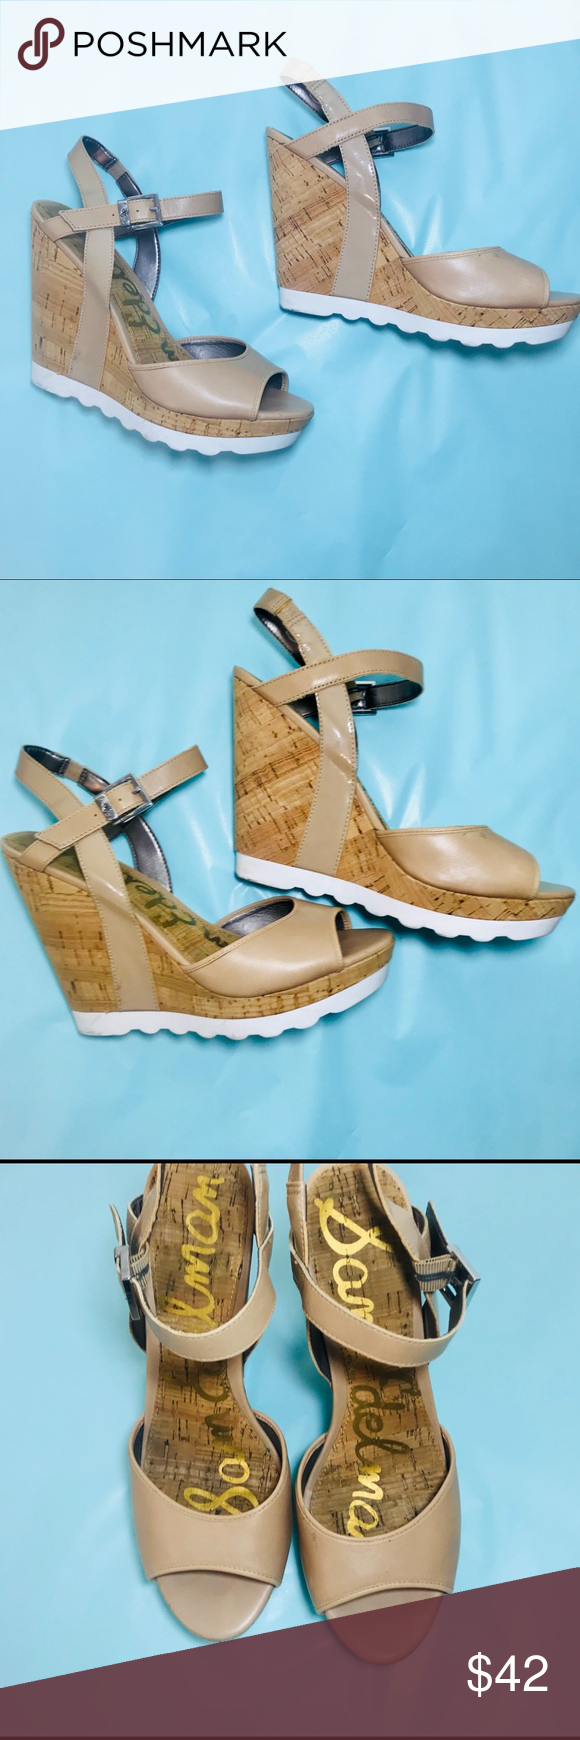 63abf4c229ac Sam Edelman Karina Platform Wedge Sandal Tan Sam Edelman Karina Platform  Wedge Sandal Tan with cute